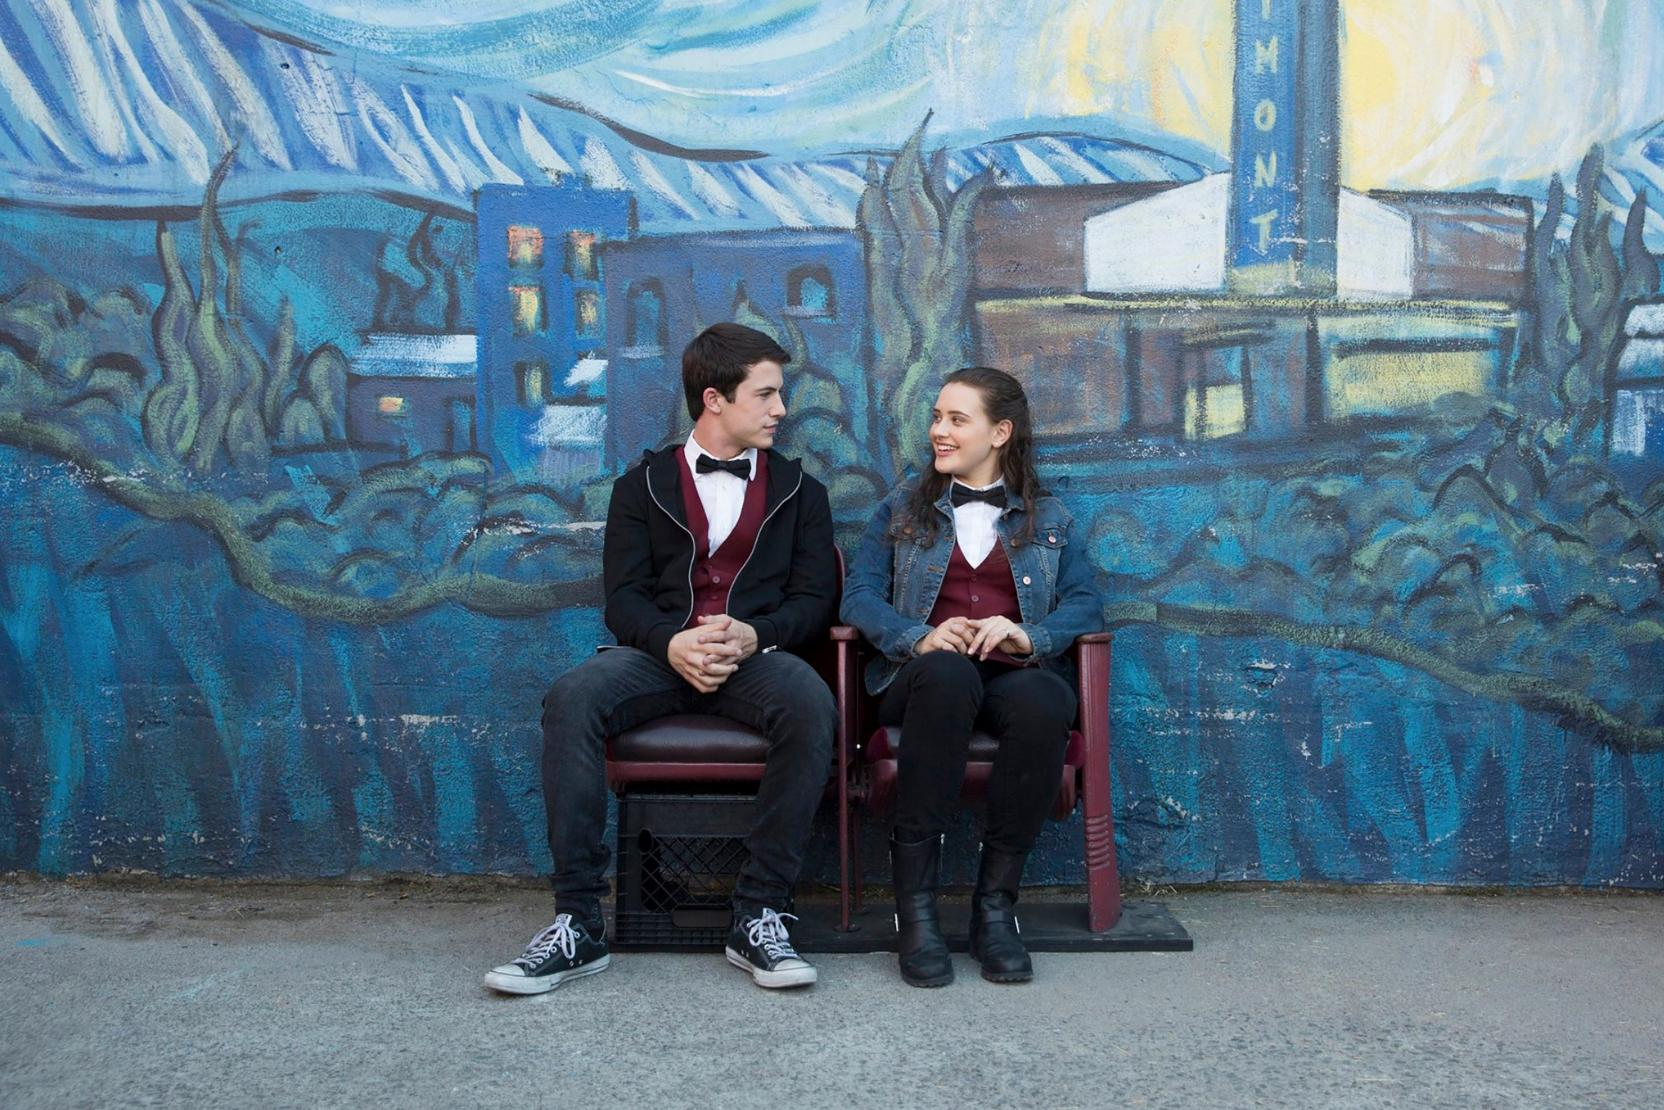 13 Reasons Why Movie Theatre